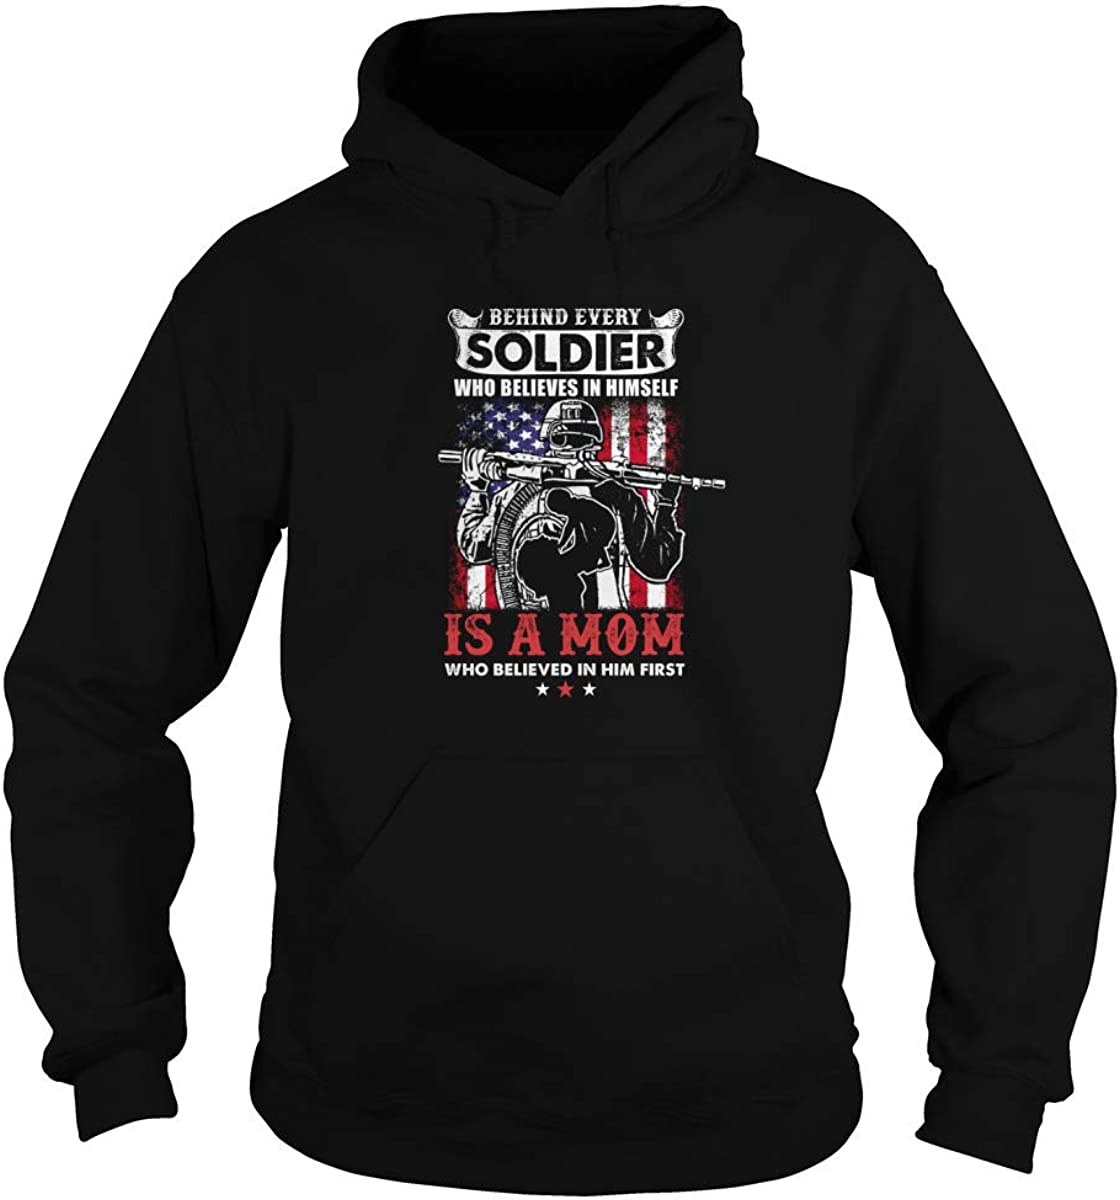 Max 83% OFF Behind Every Soldier Who Believes in Himself A Mom is T-Shirt Complete Free Shipping